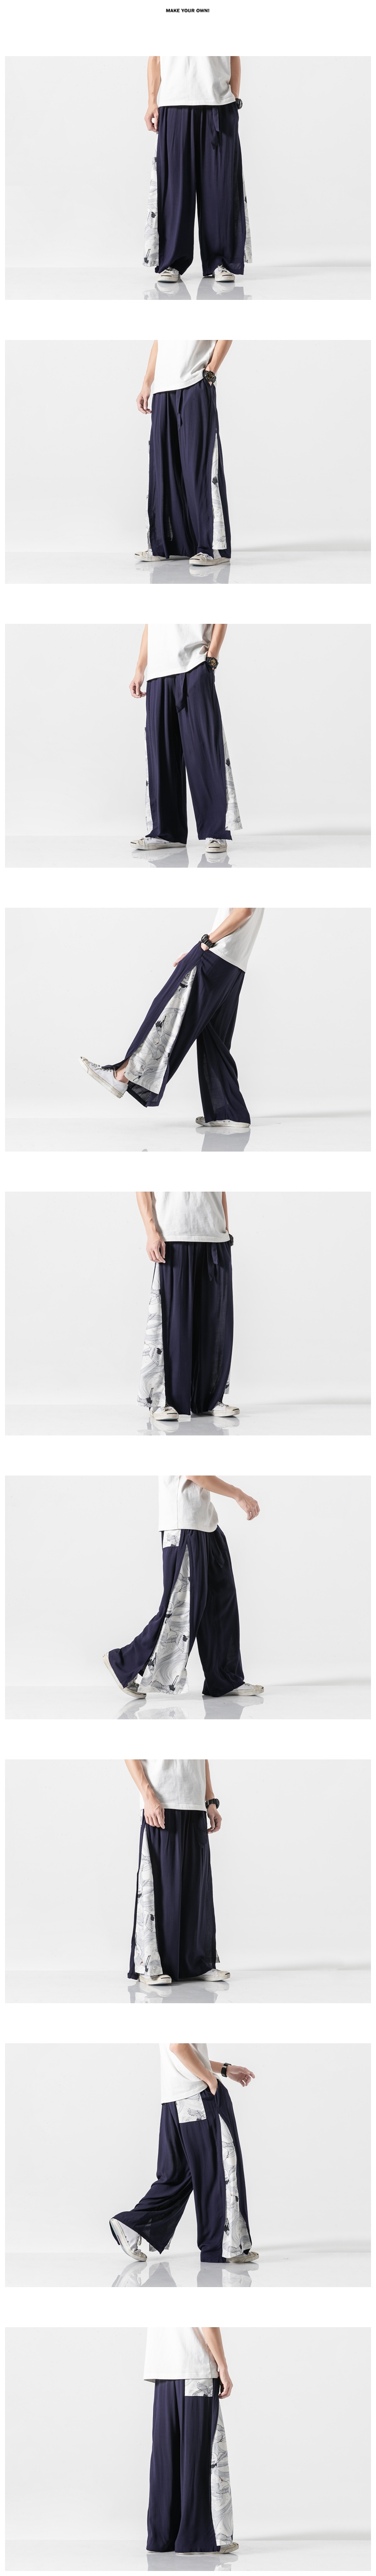 Sinicism Store 2020 Summer Chinese Style Cotton Pants Mens Patchwork Vintage Loose Pants Male Wide Leg Pants 25